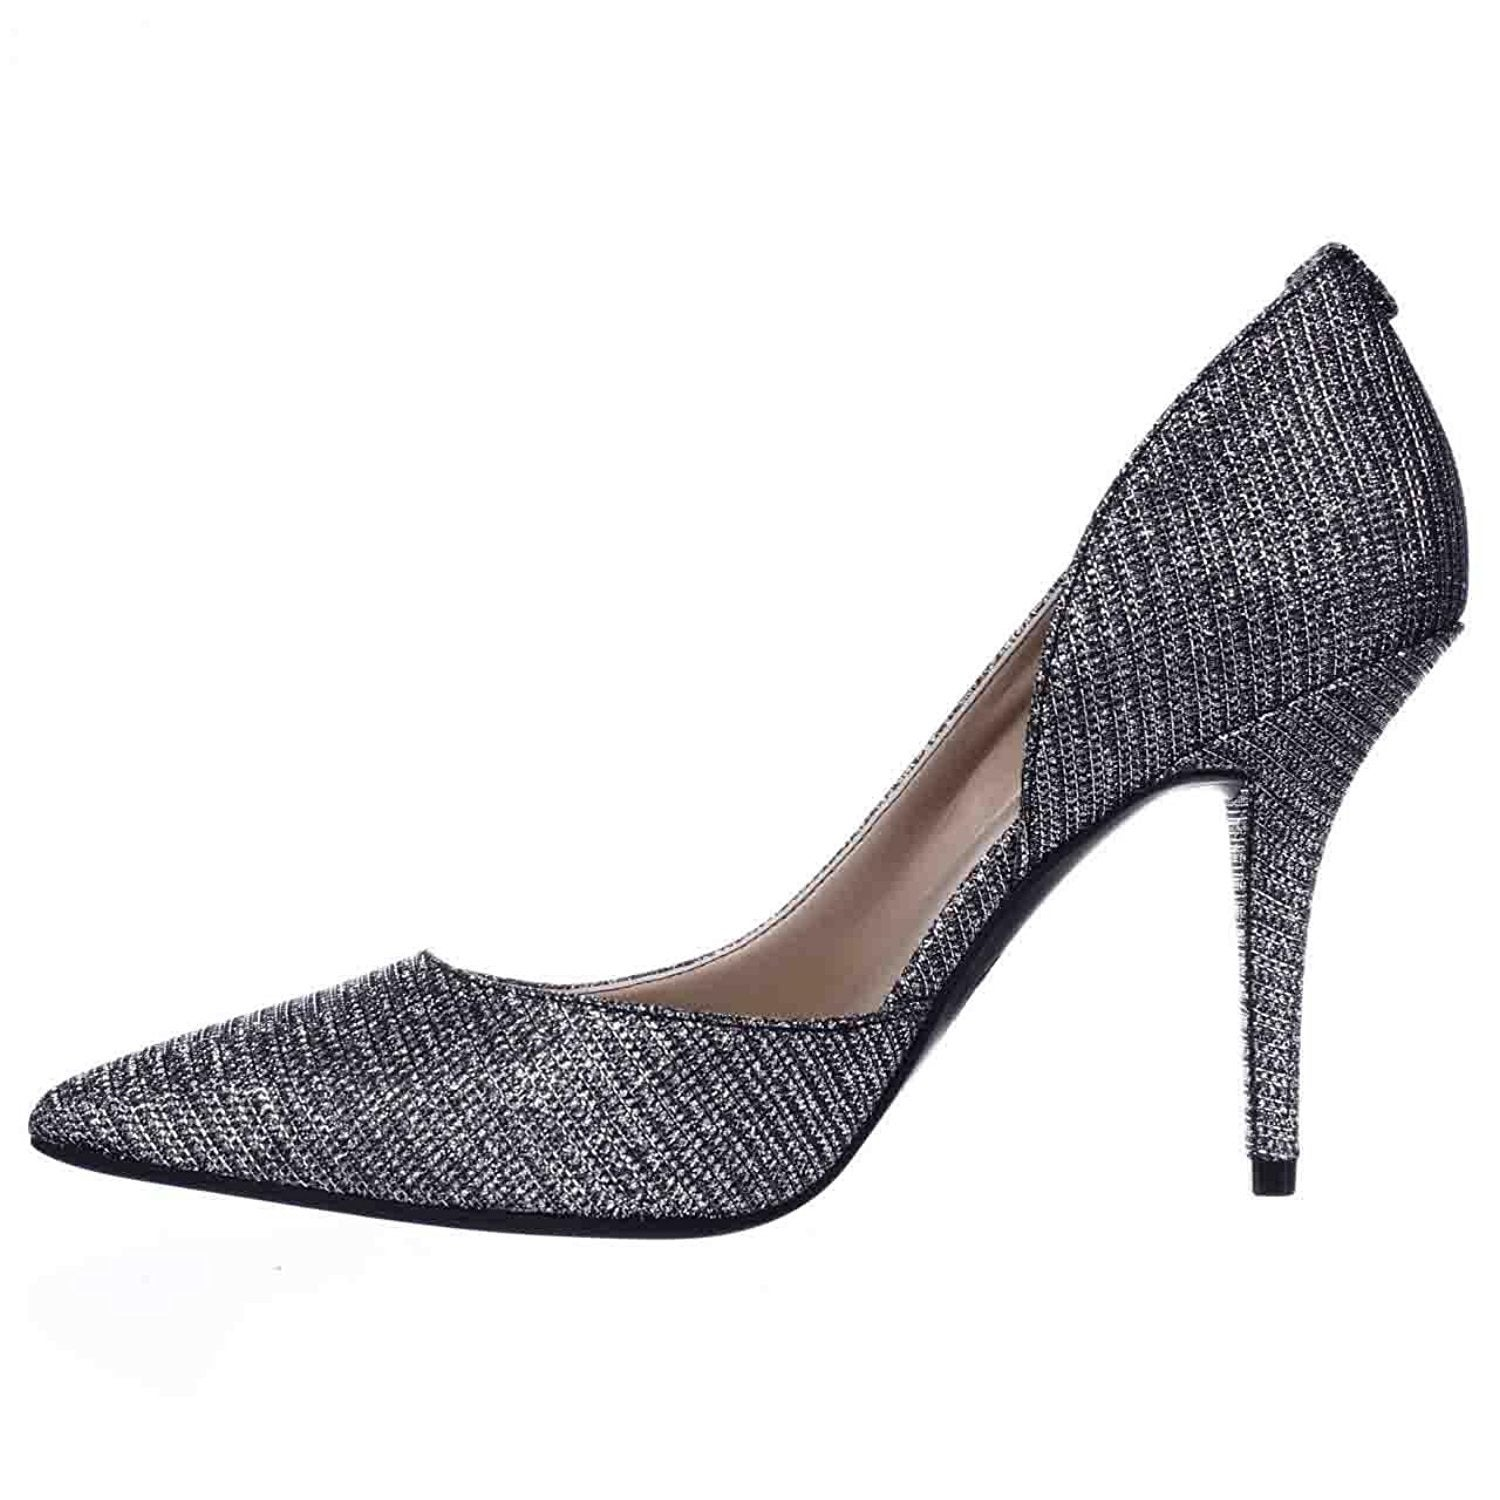 4e3816214266 Shop MICHAEL Michael Kors Womens Nathalie Flex Suede Pointed Toe D-orsay  Pumps - Free Shipping Today - Overstock - 19840677